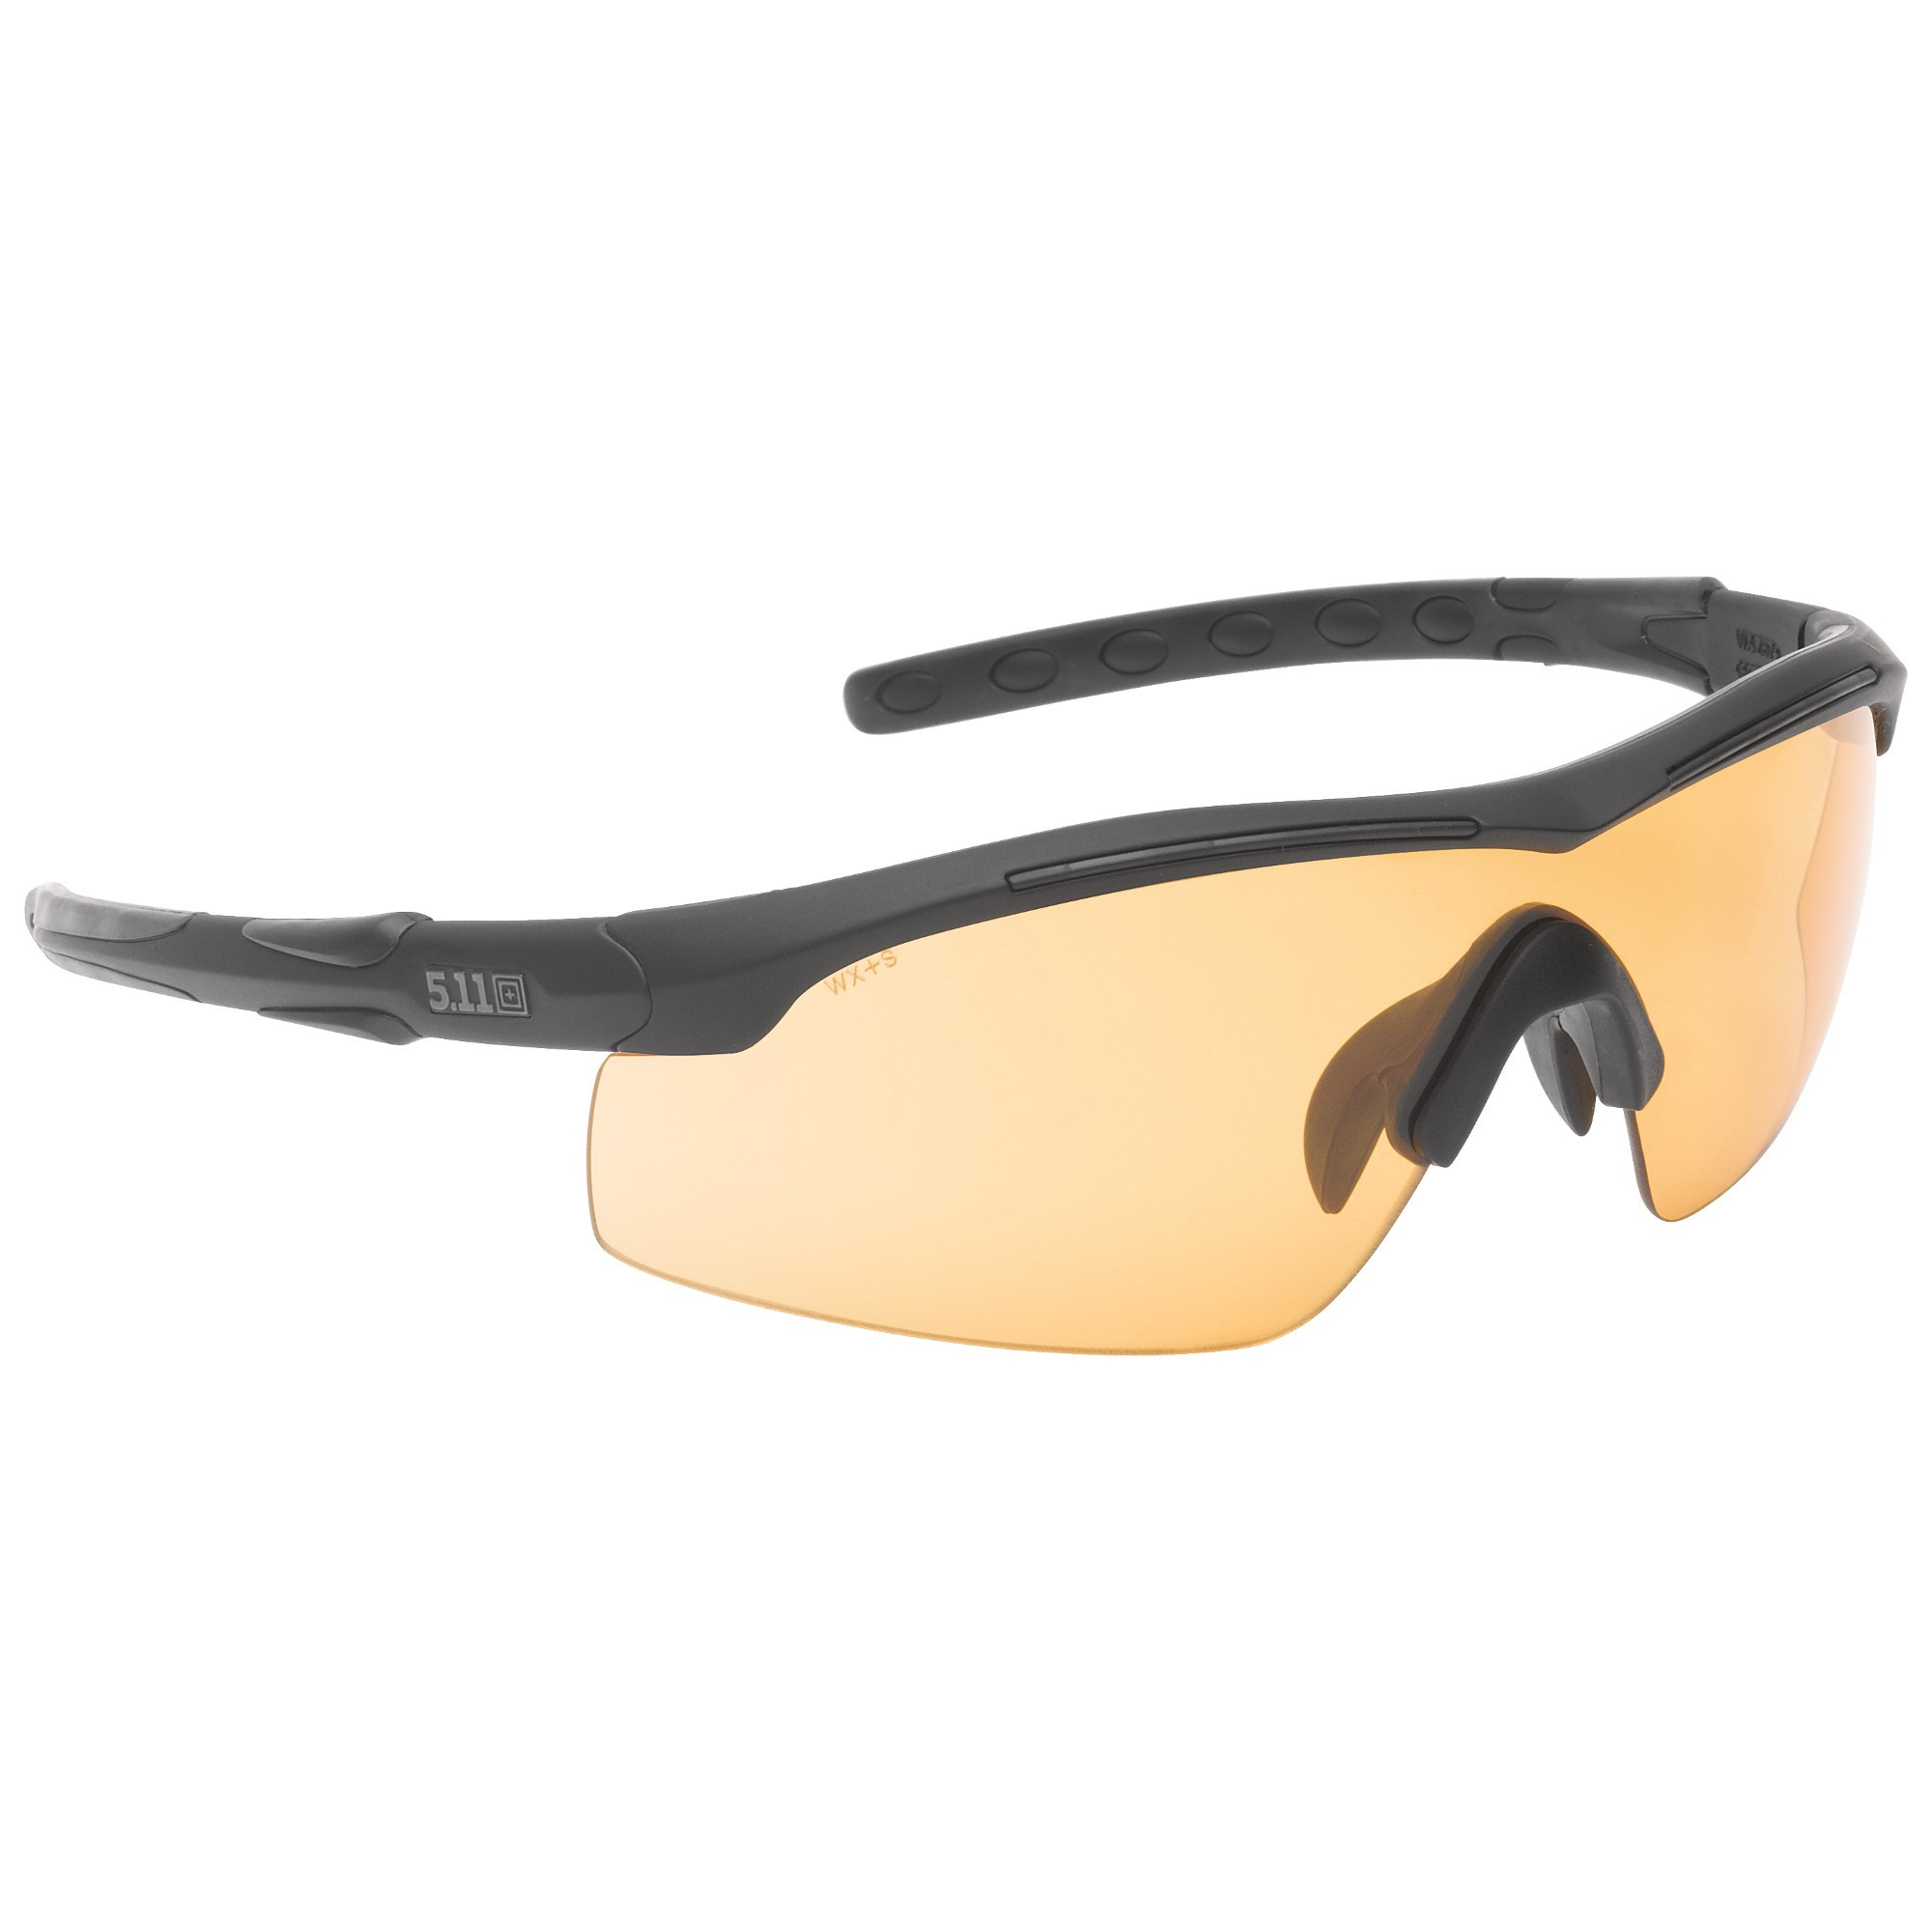 5.11 Raid Sunglasses 52022